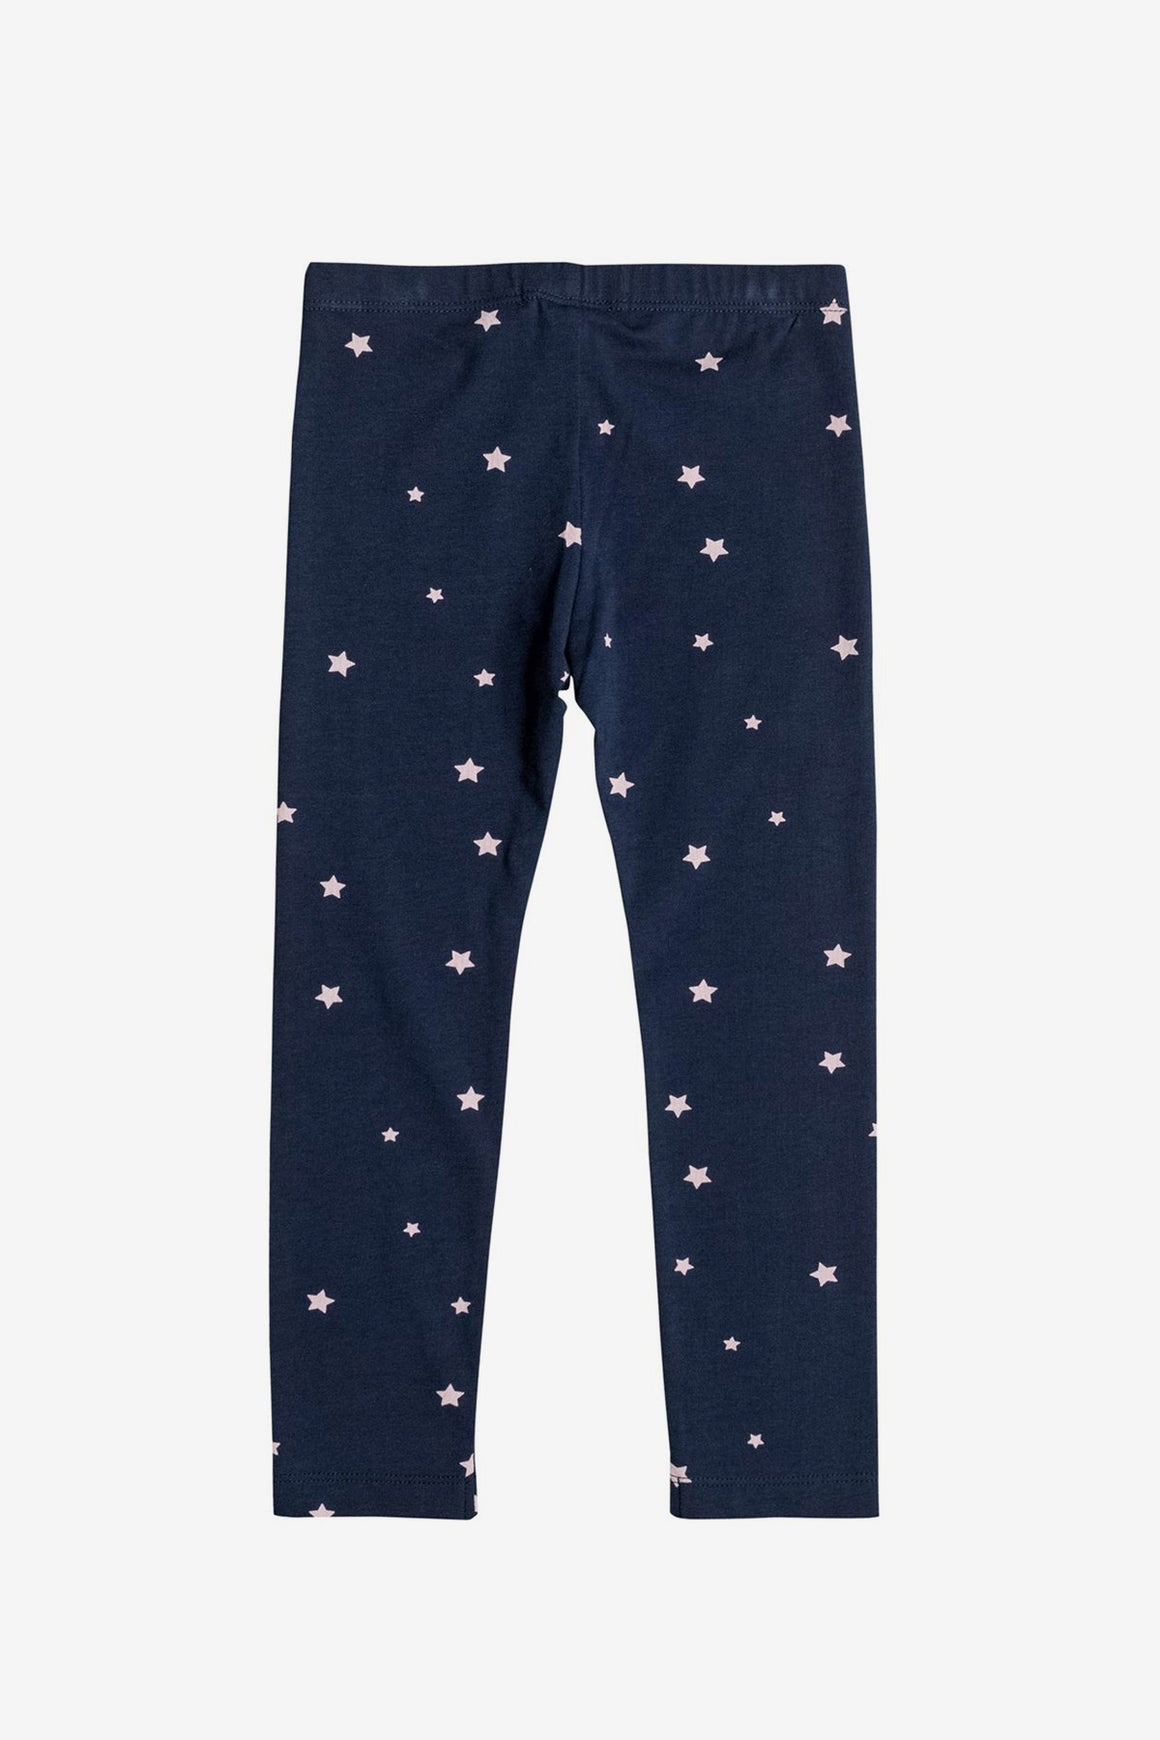 Roxy Girls Star Leggings